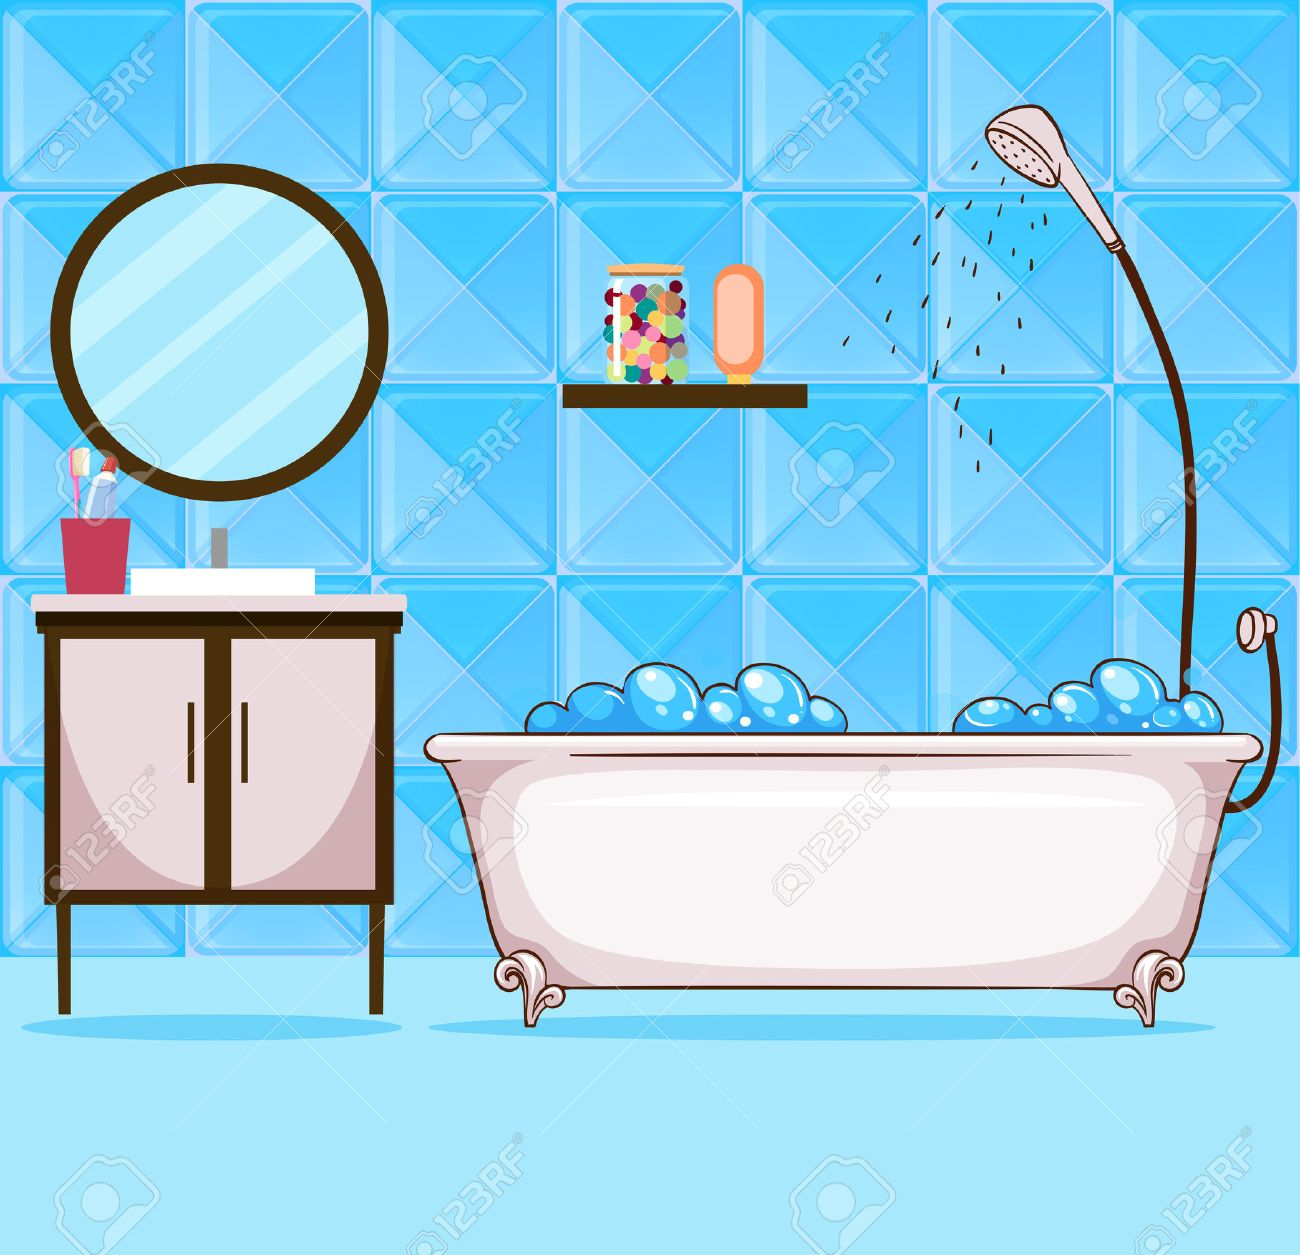 Bathroom pictures clipart jpg black and white Collection of 14 free Bathtub clipart shawer crabs clipart. Download ... jpg black and white